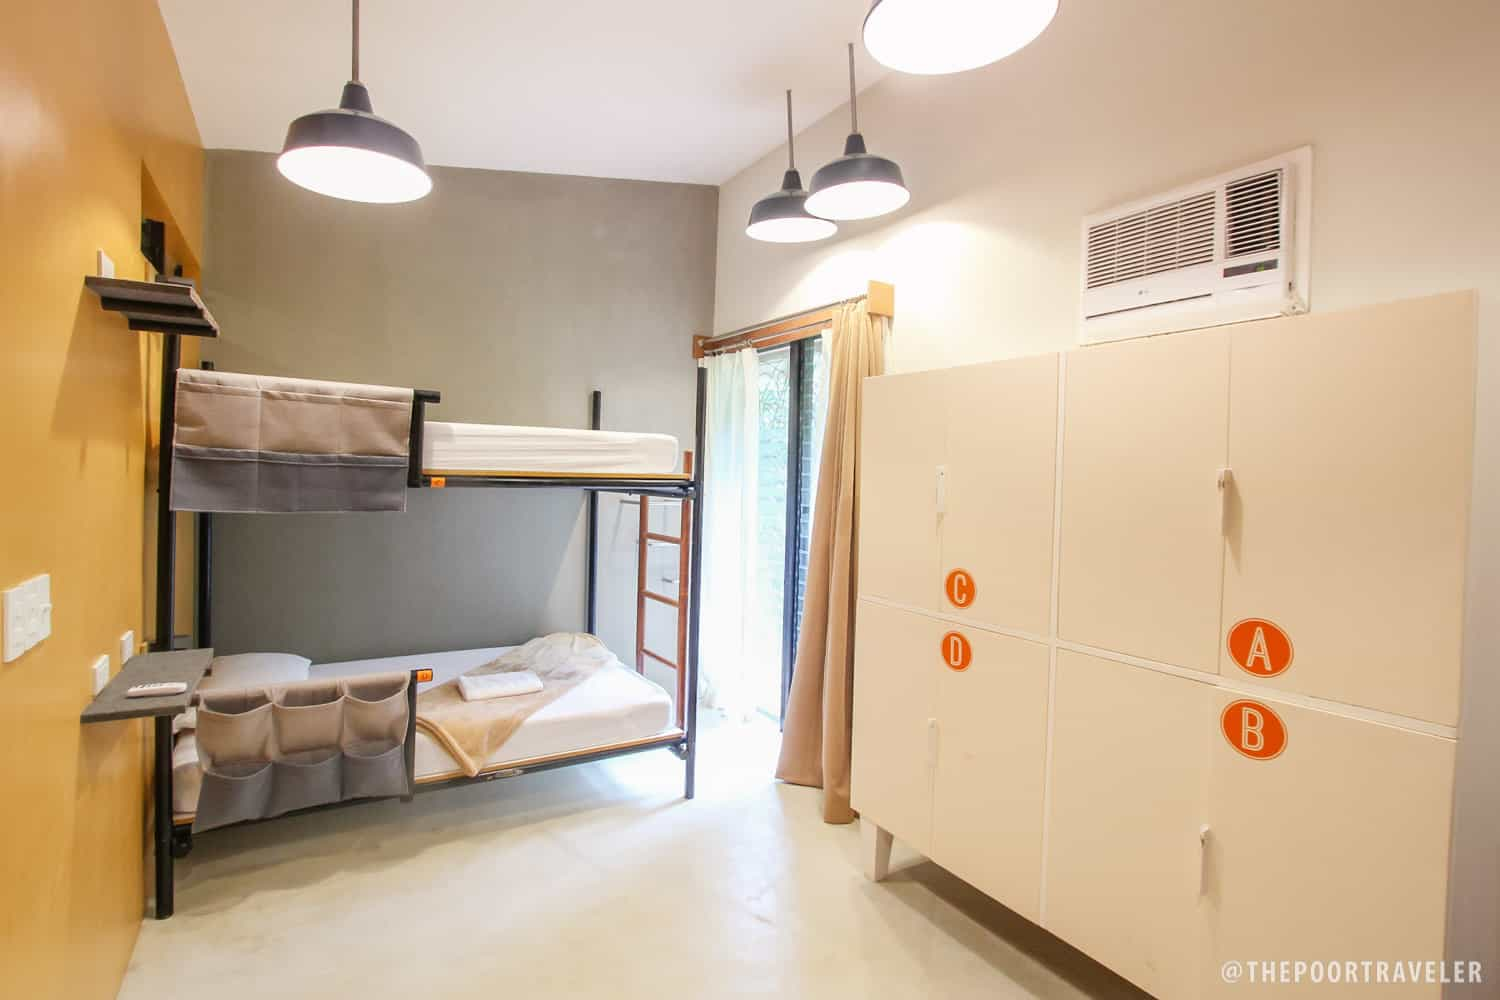 One side of a 4-bed dormitory